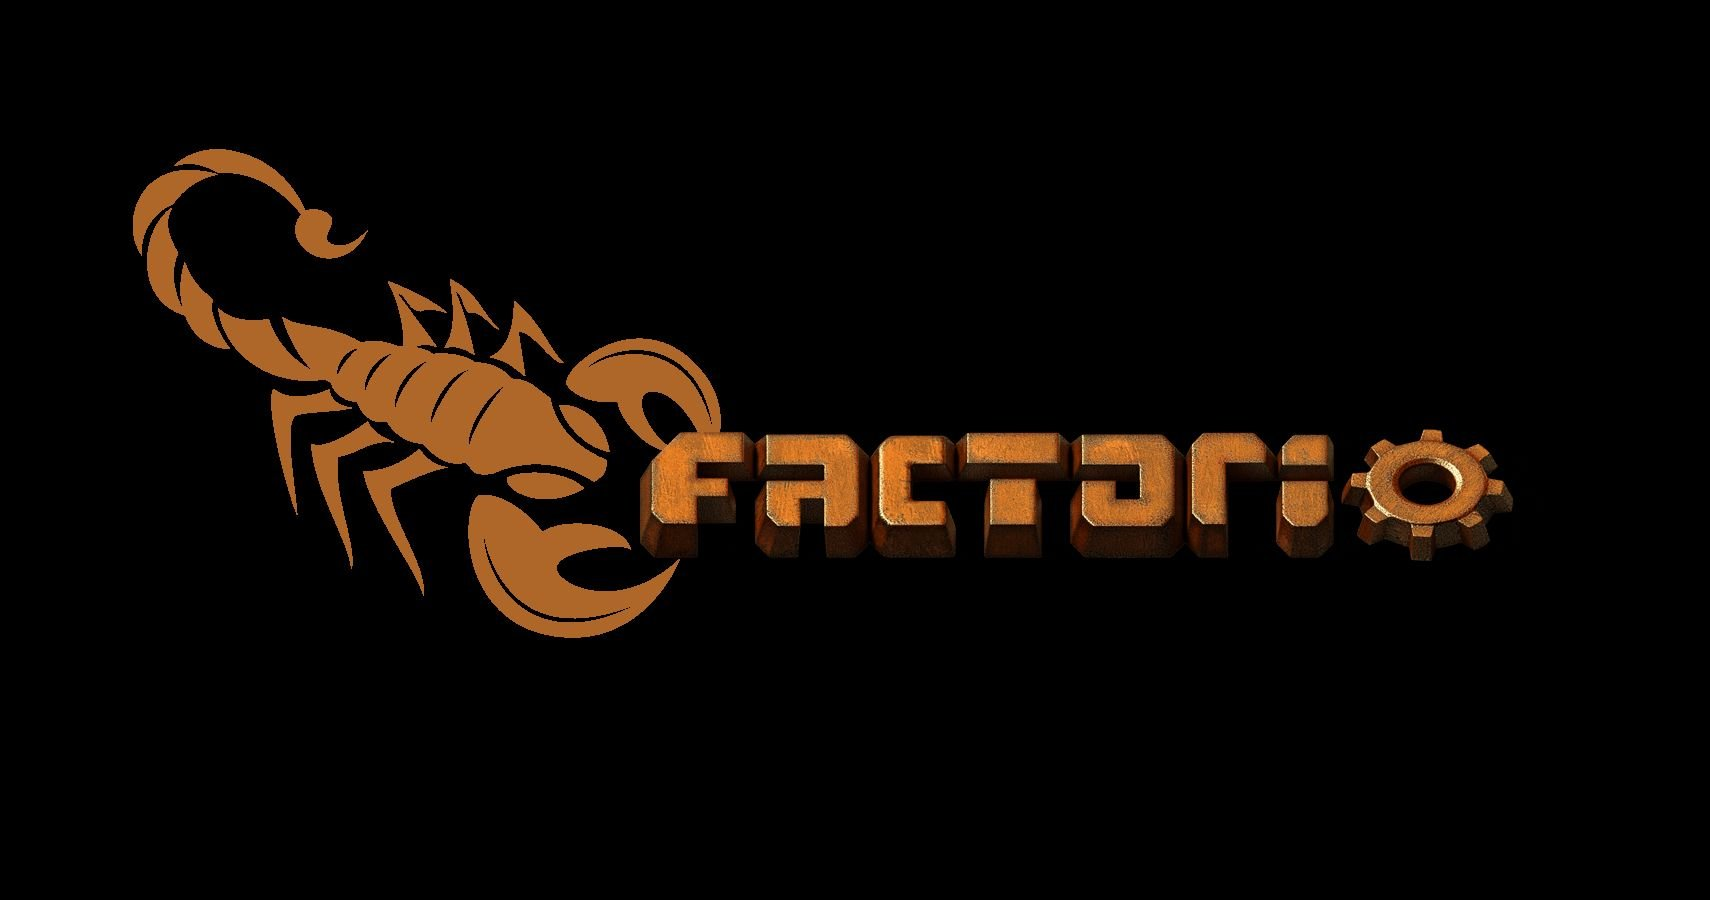 There's A Scorpion Named After Factorio